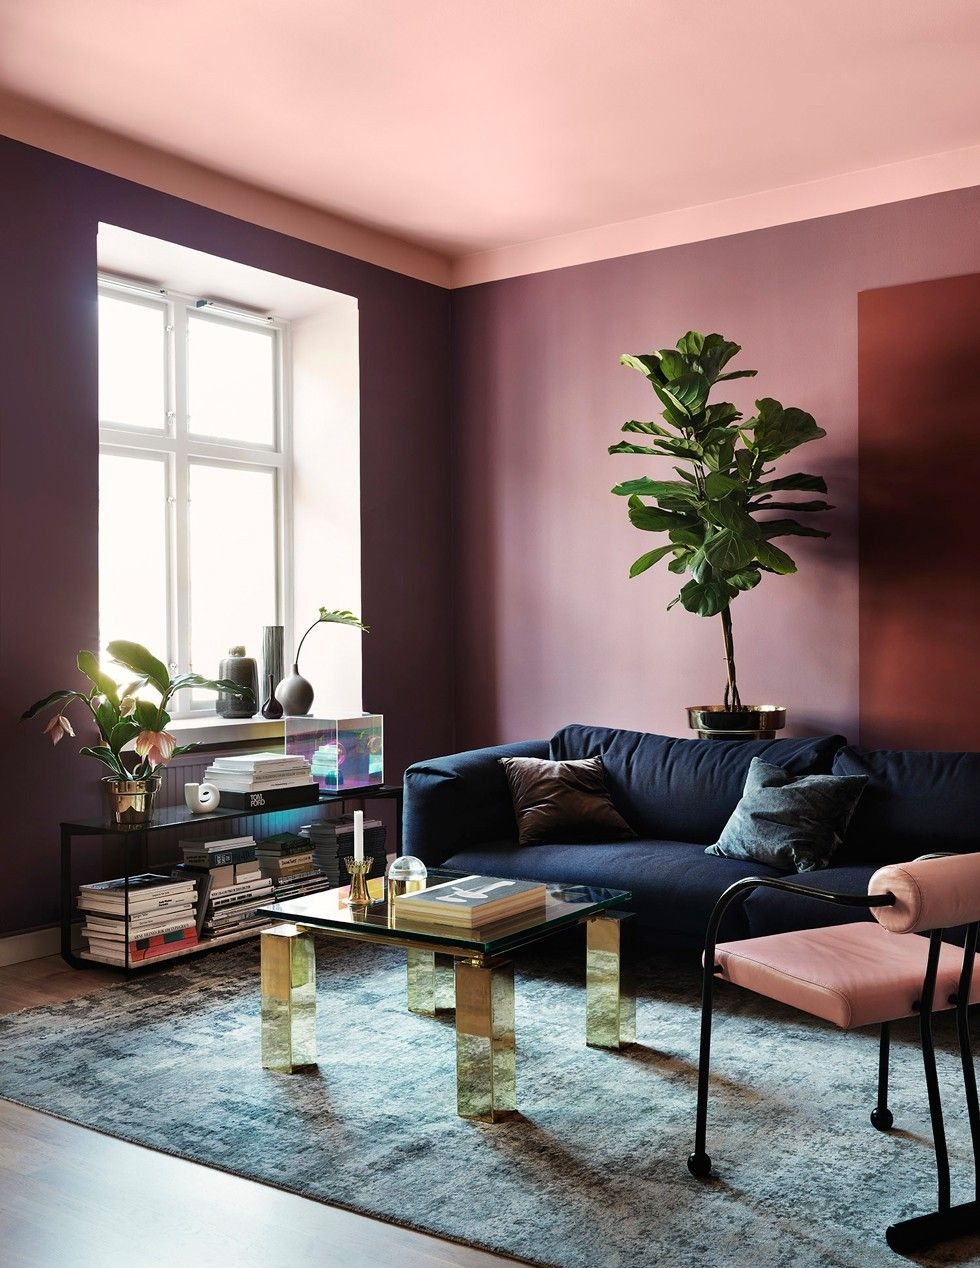 Home interior design color schemes pin by home decor solutions on cheap home decor  pinterest